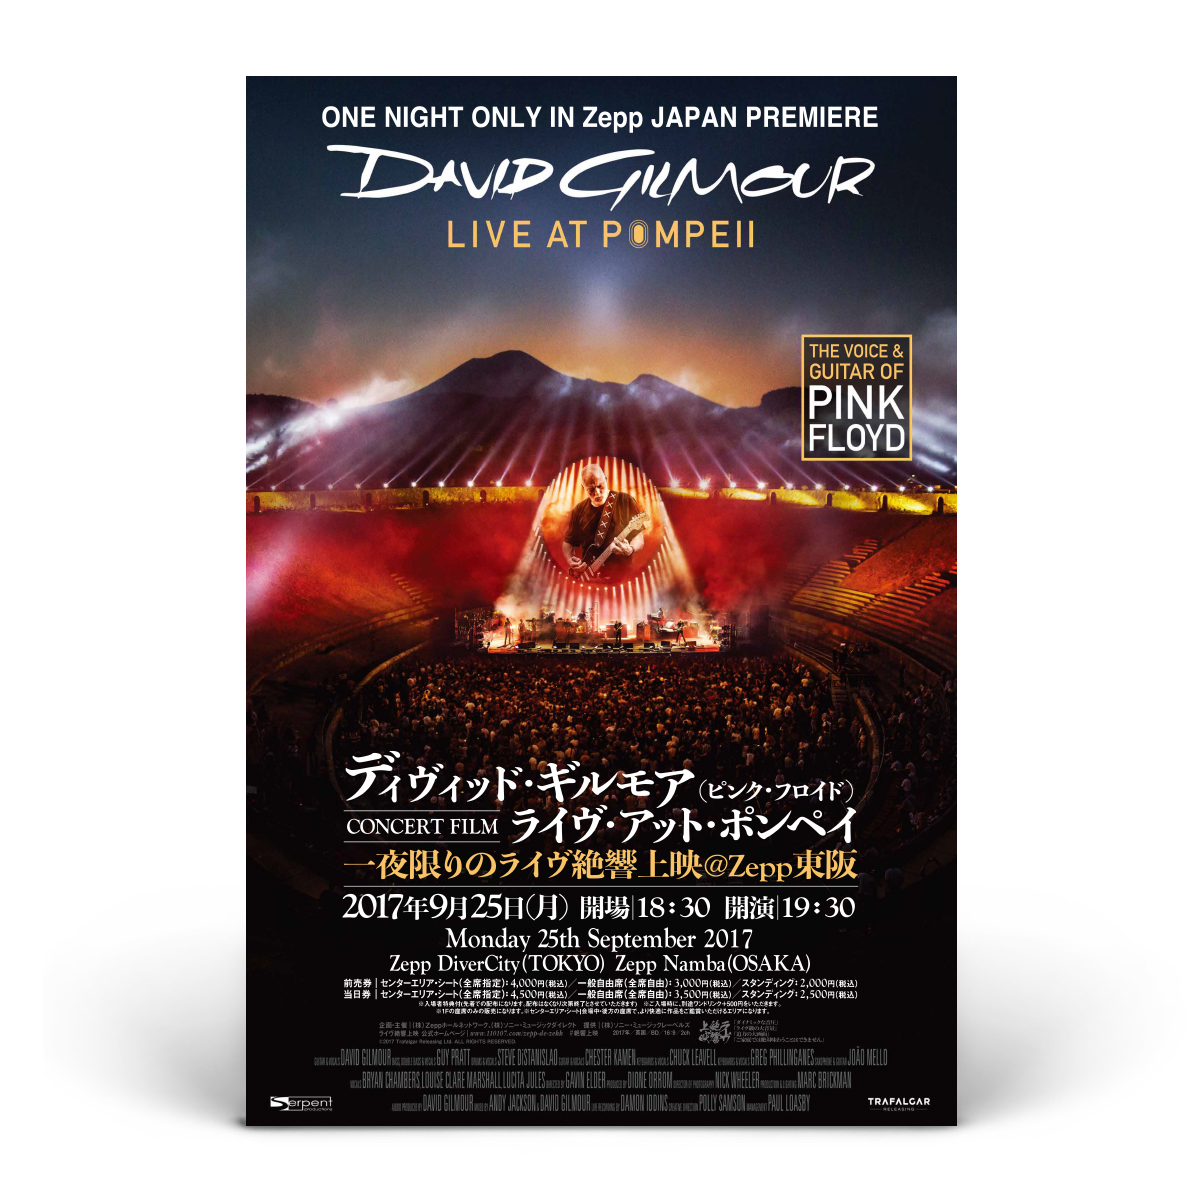 David Gilmour Live at Pompeii Official Movie Poster - Japanese